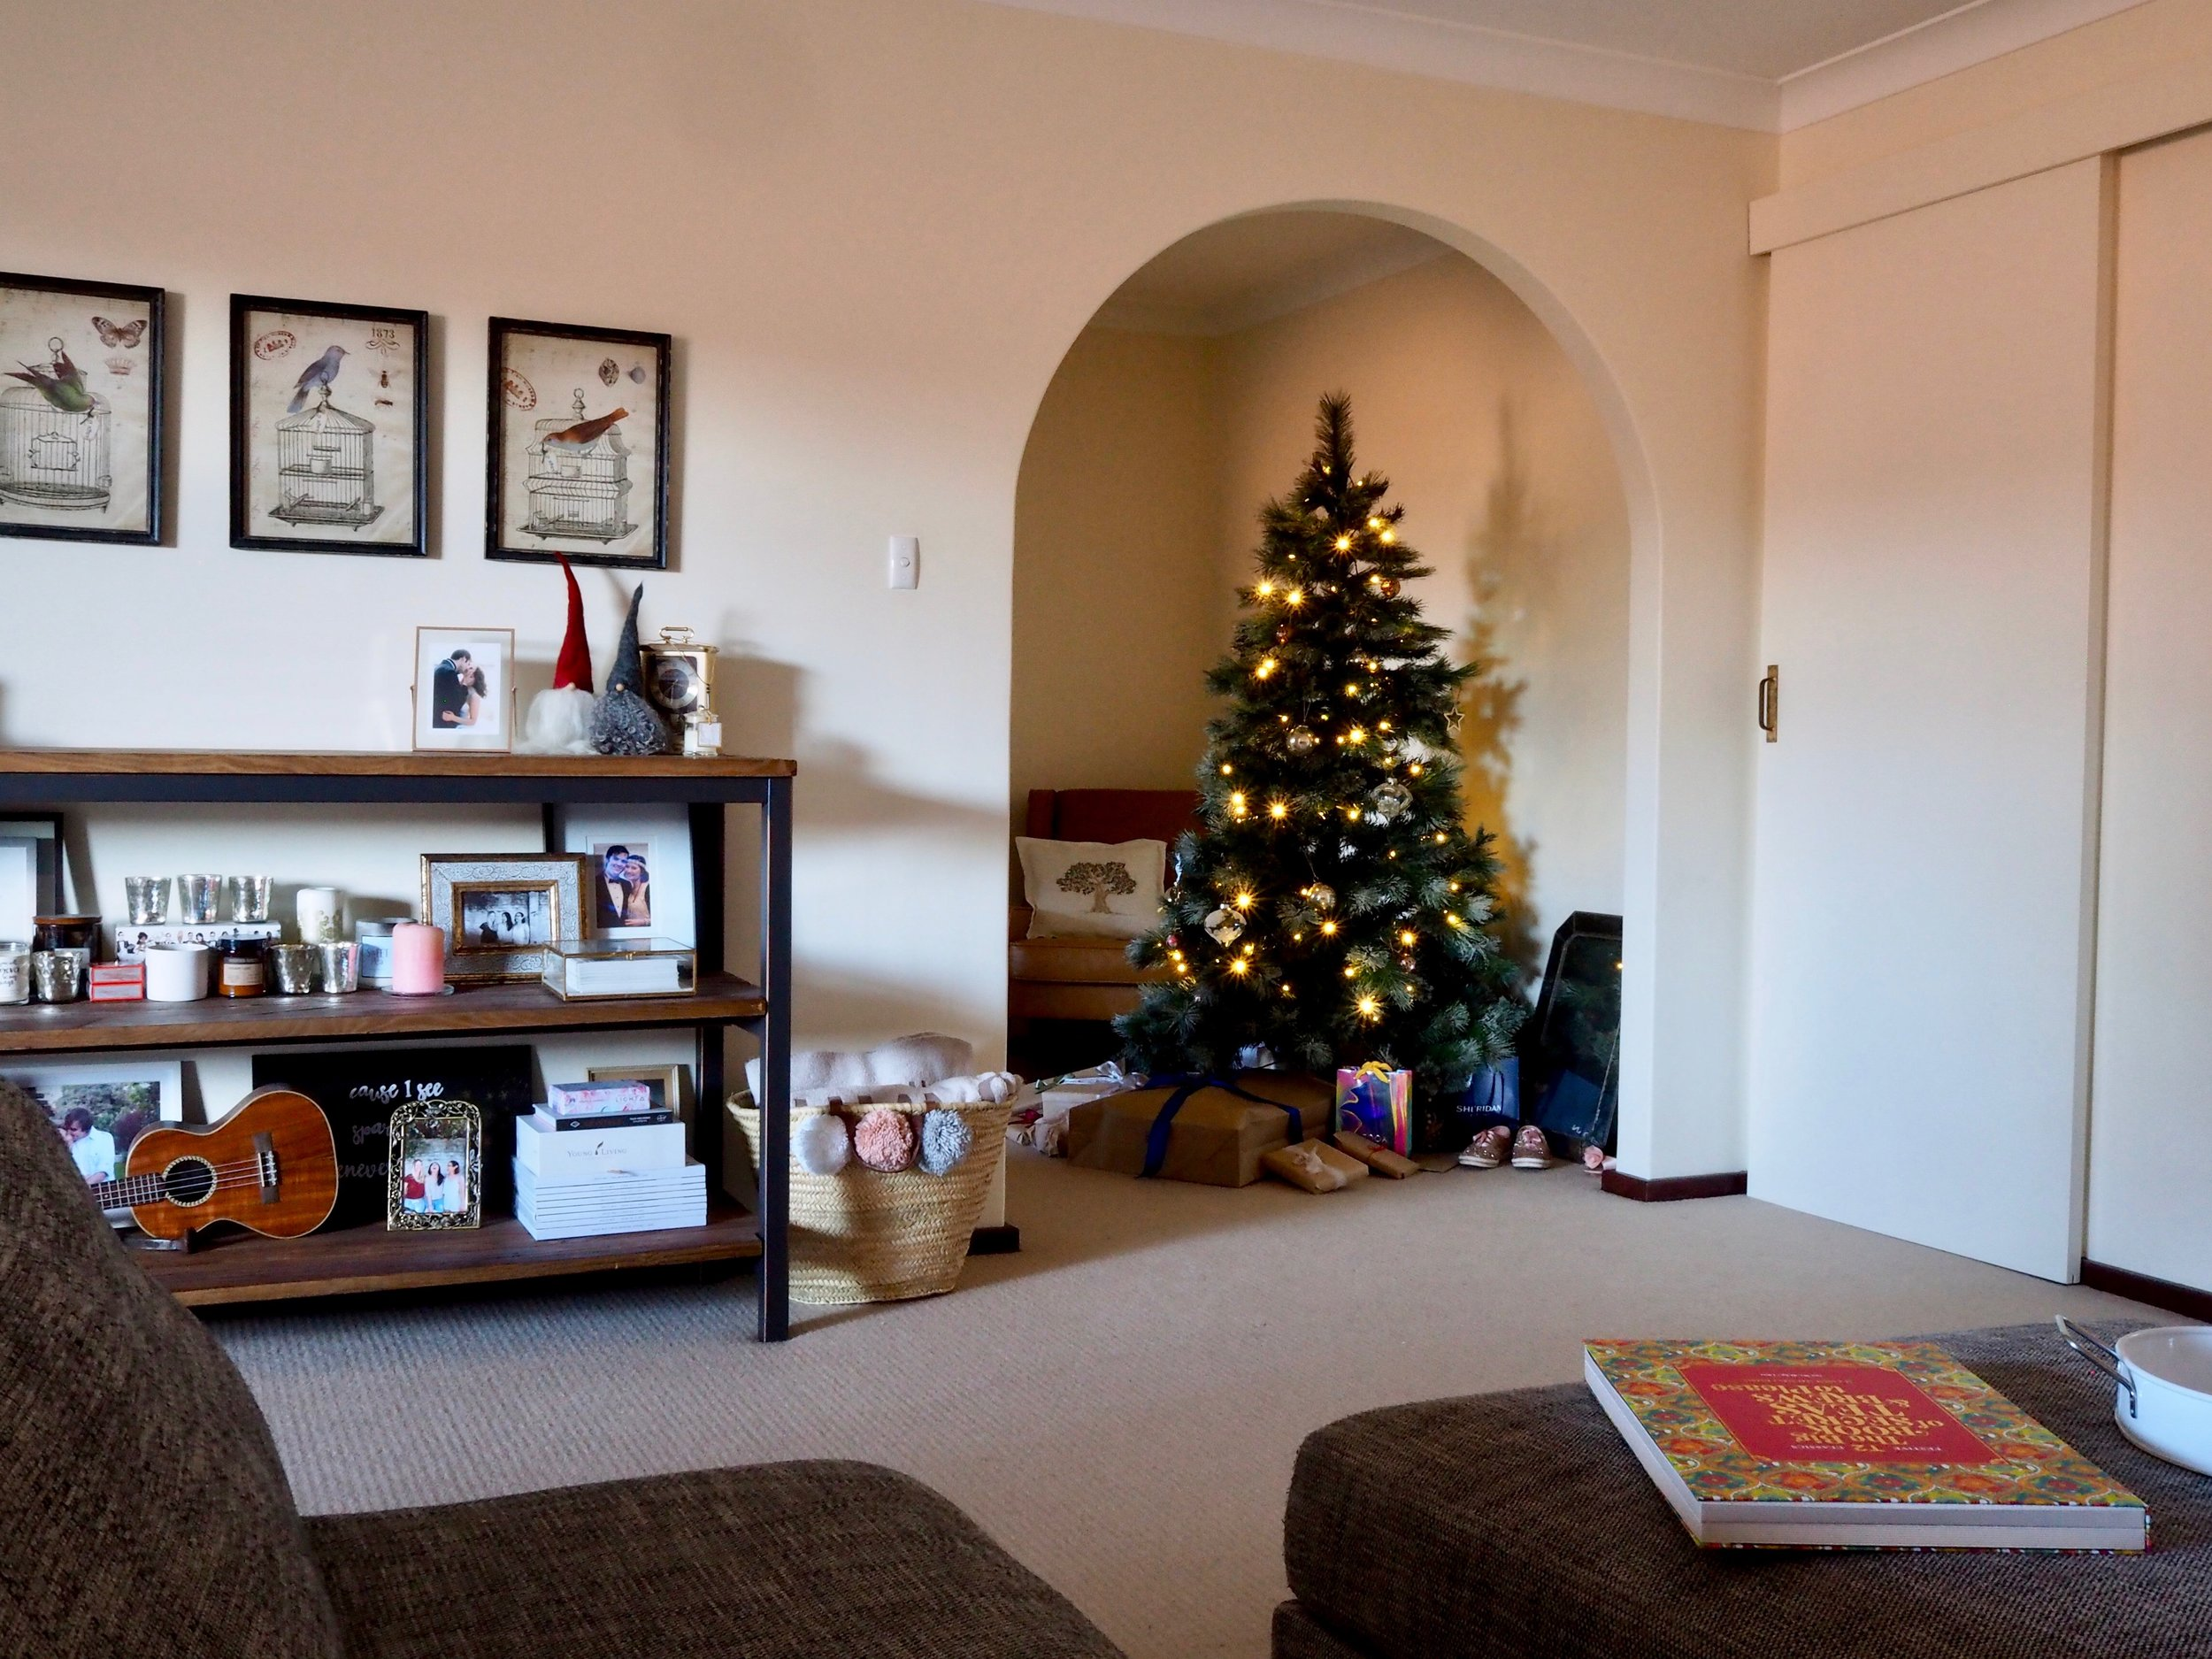 Simple Christmas Decor Ideas and Tips for a Small